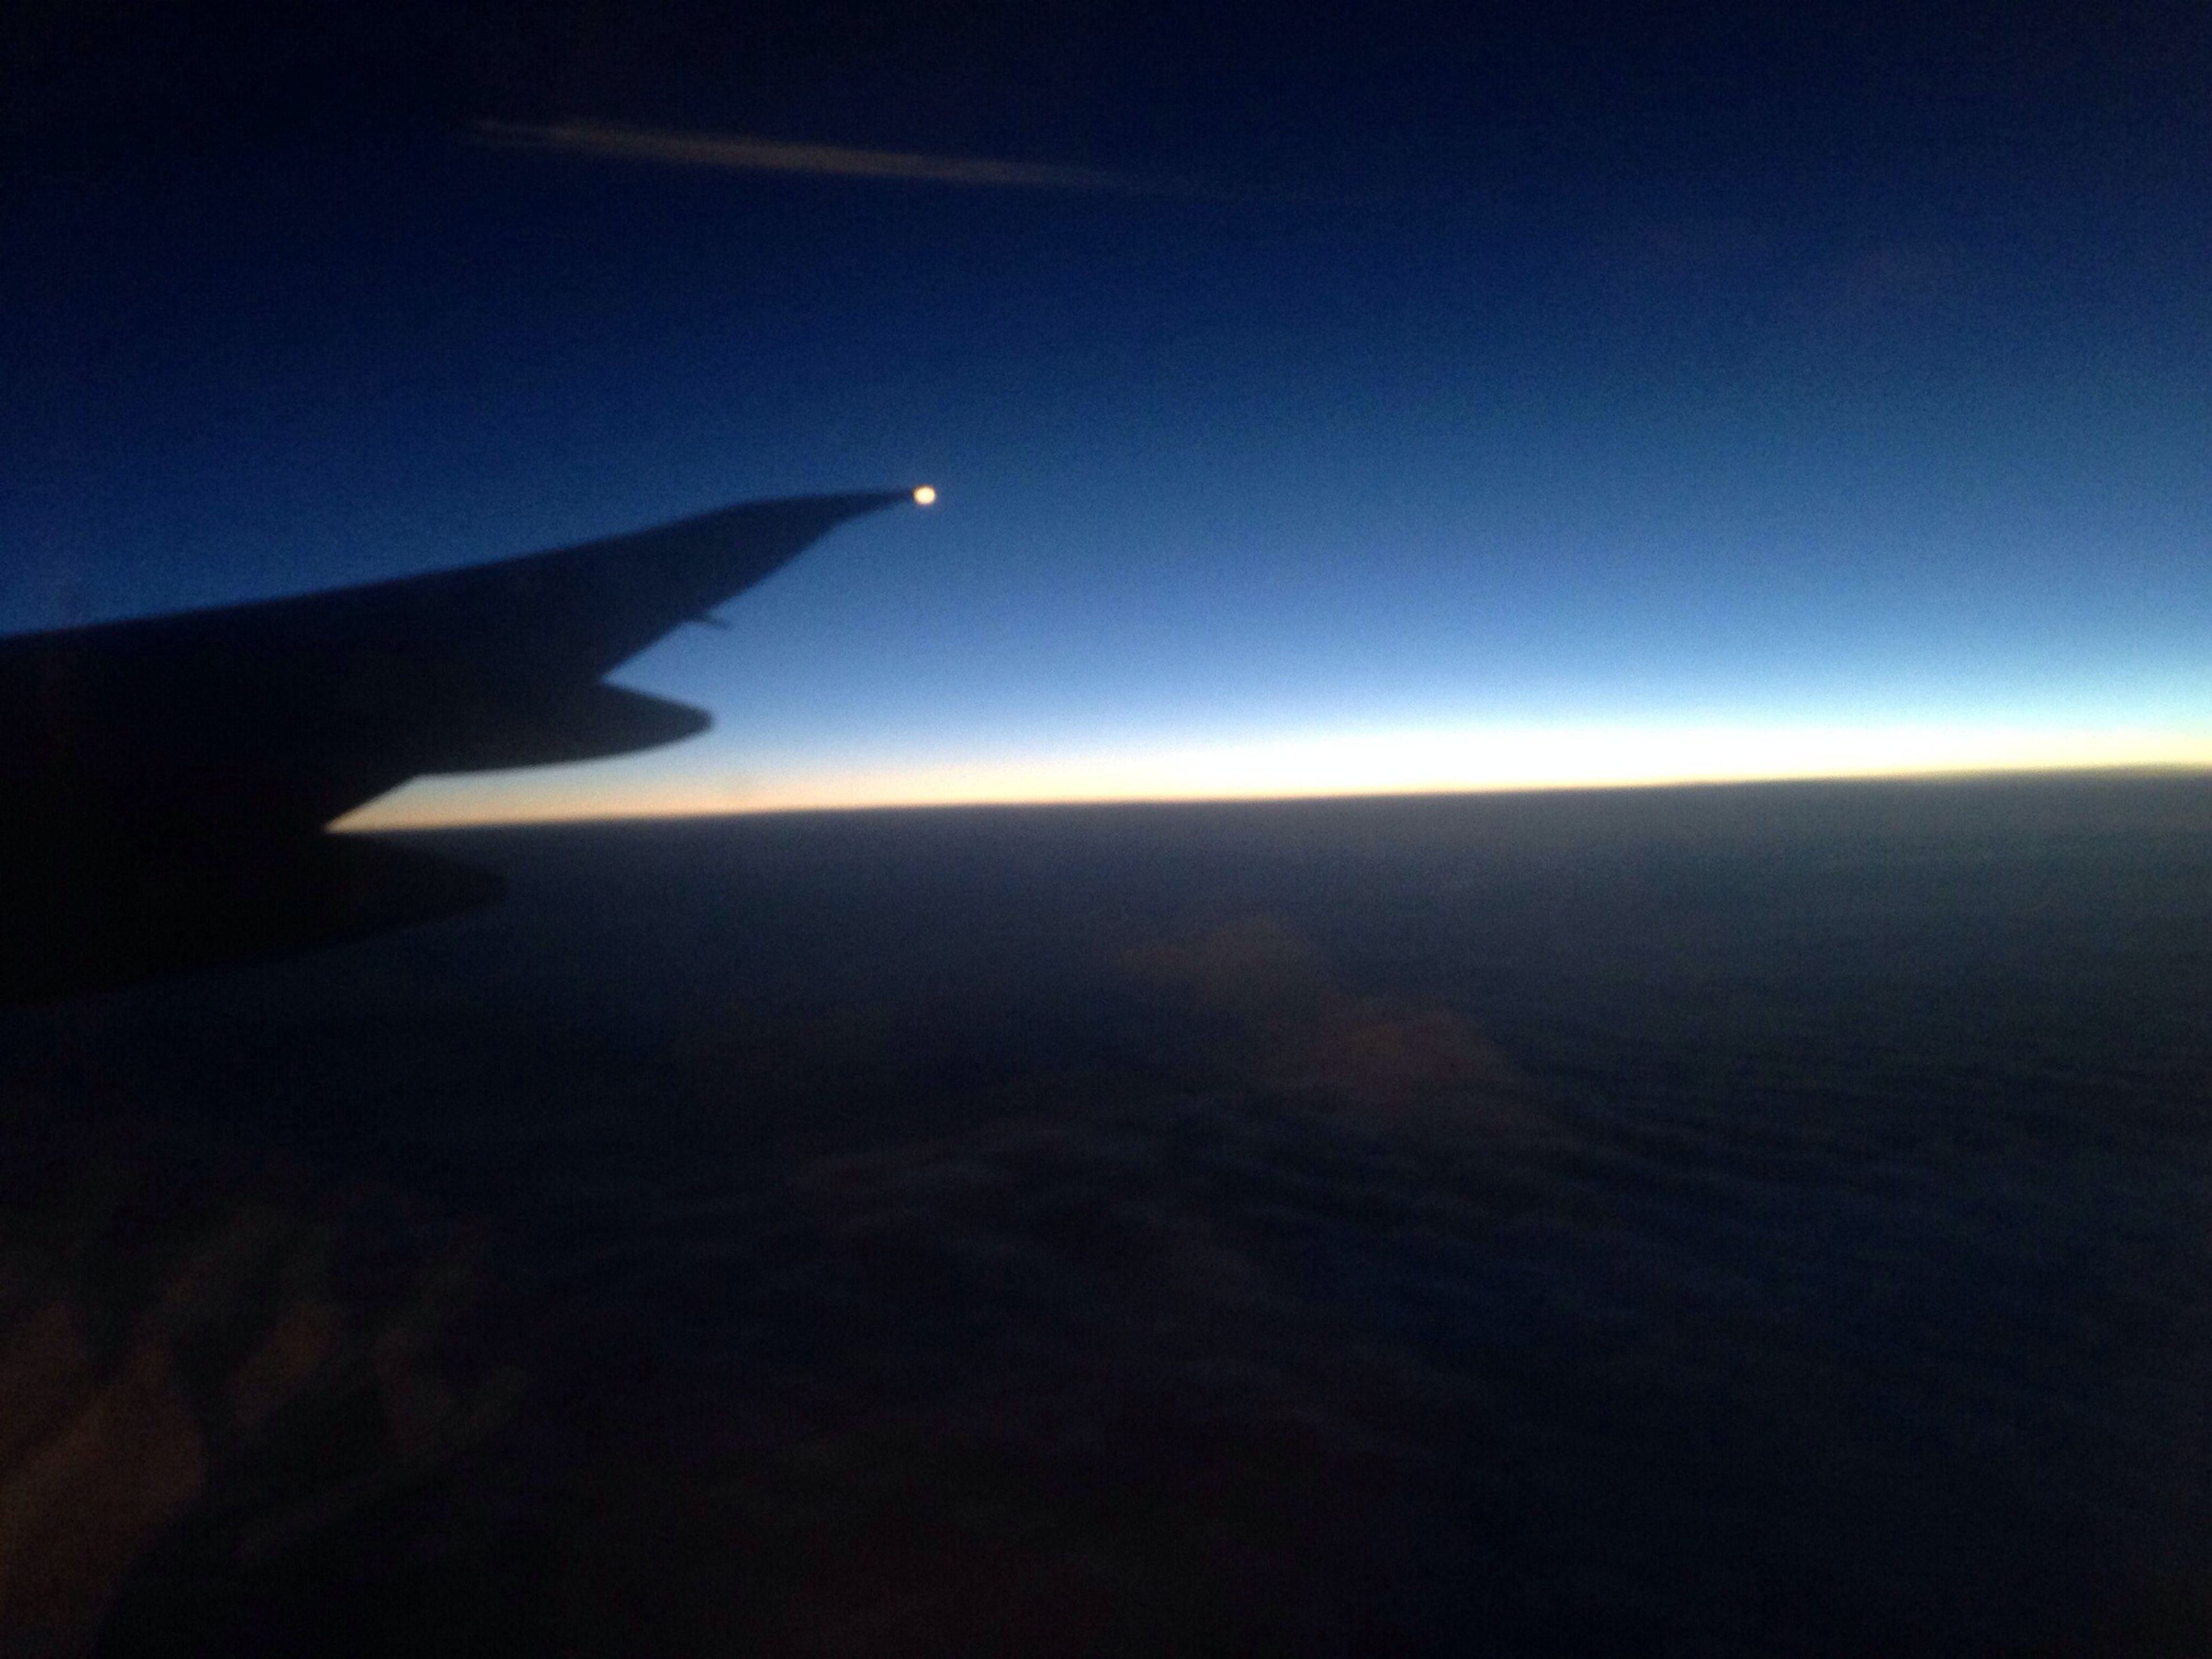 airplane, air vehicle, aircraft wing, flying, transportation, aerial view, part of, mode of transport, cropped, scenics, sky, mid-air, beauty in nature, travel, blue, journey, airplane wing, nature, sunset, tranquil scene